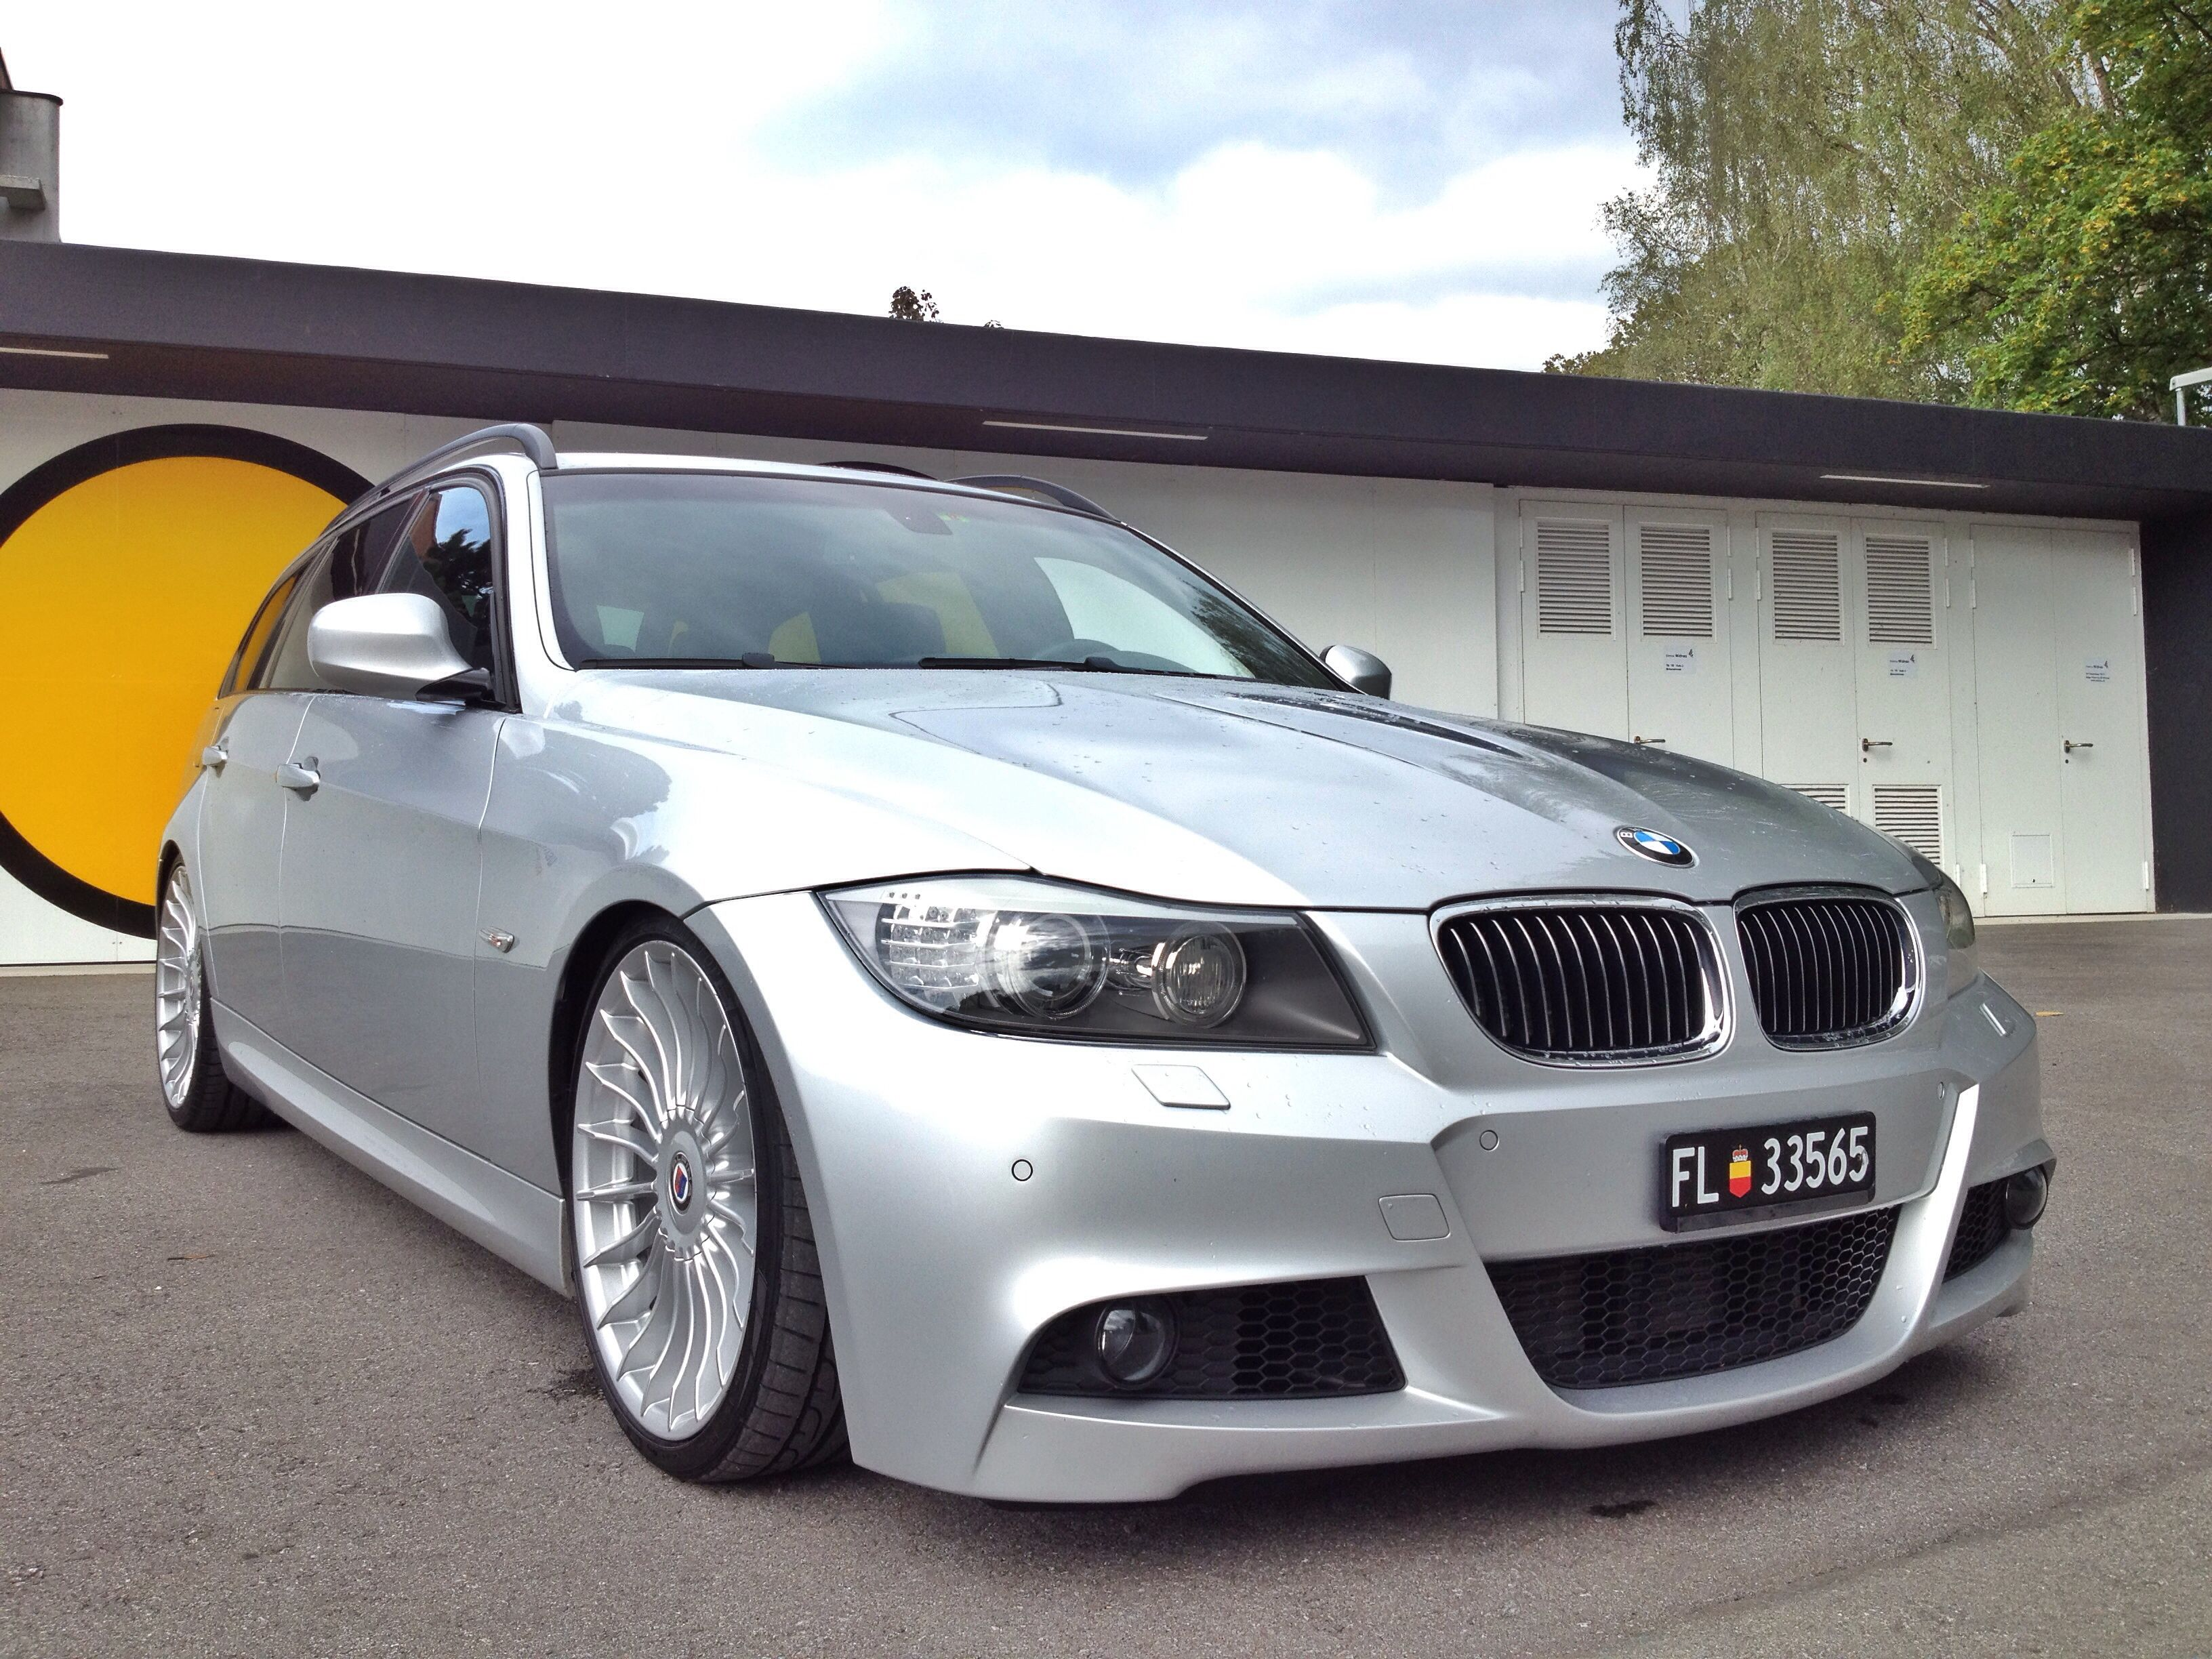 bmw 335i e91 alpina wheels stance bmw 3 series pinterest bmw wheels and cars. Black Bedroom Furniture Sets. Home Design Ideas